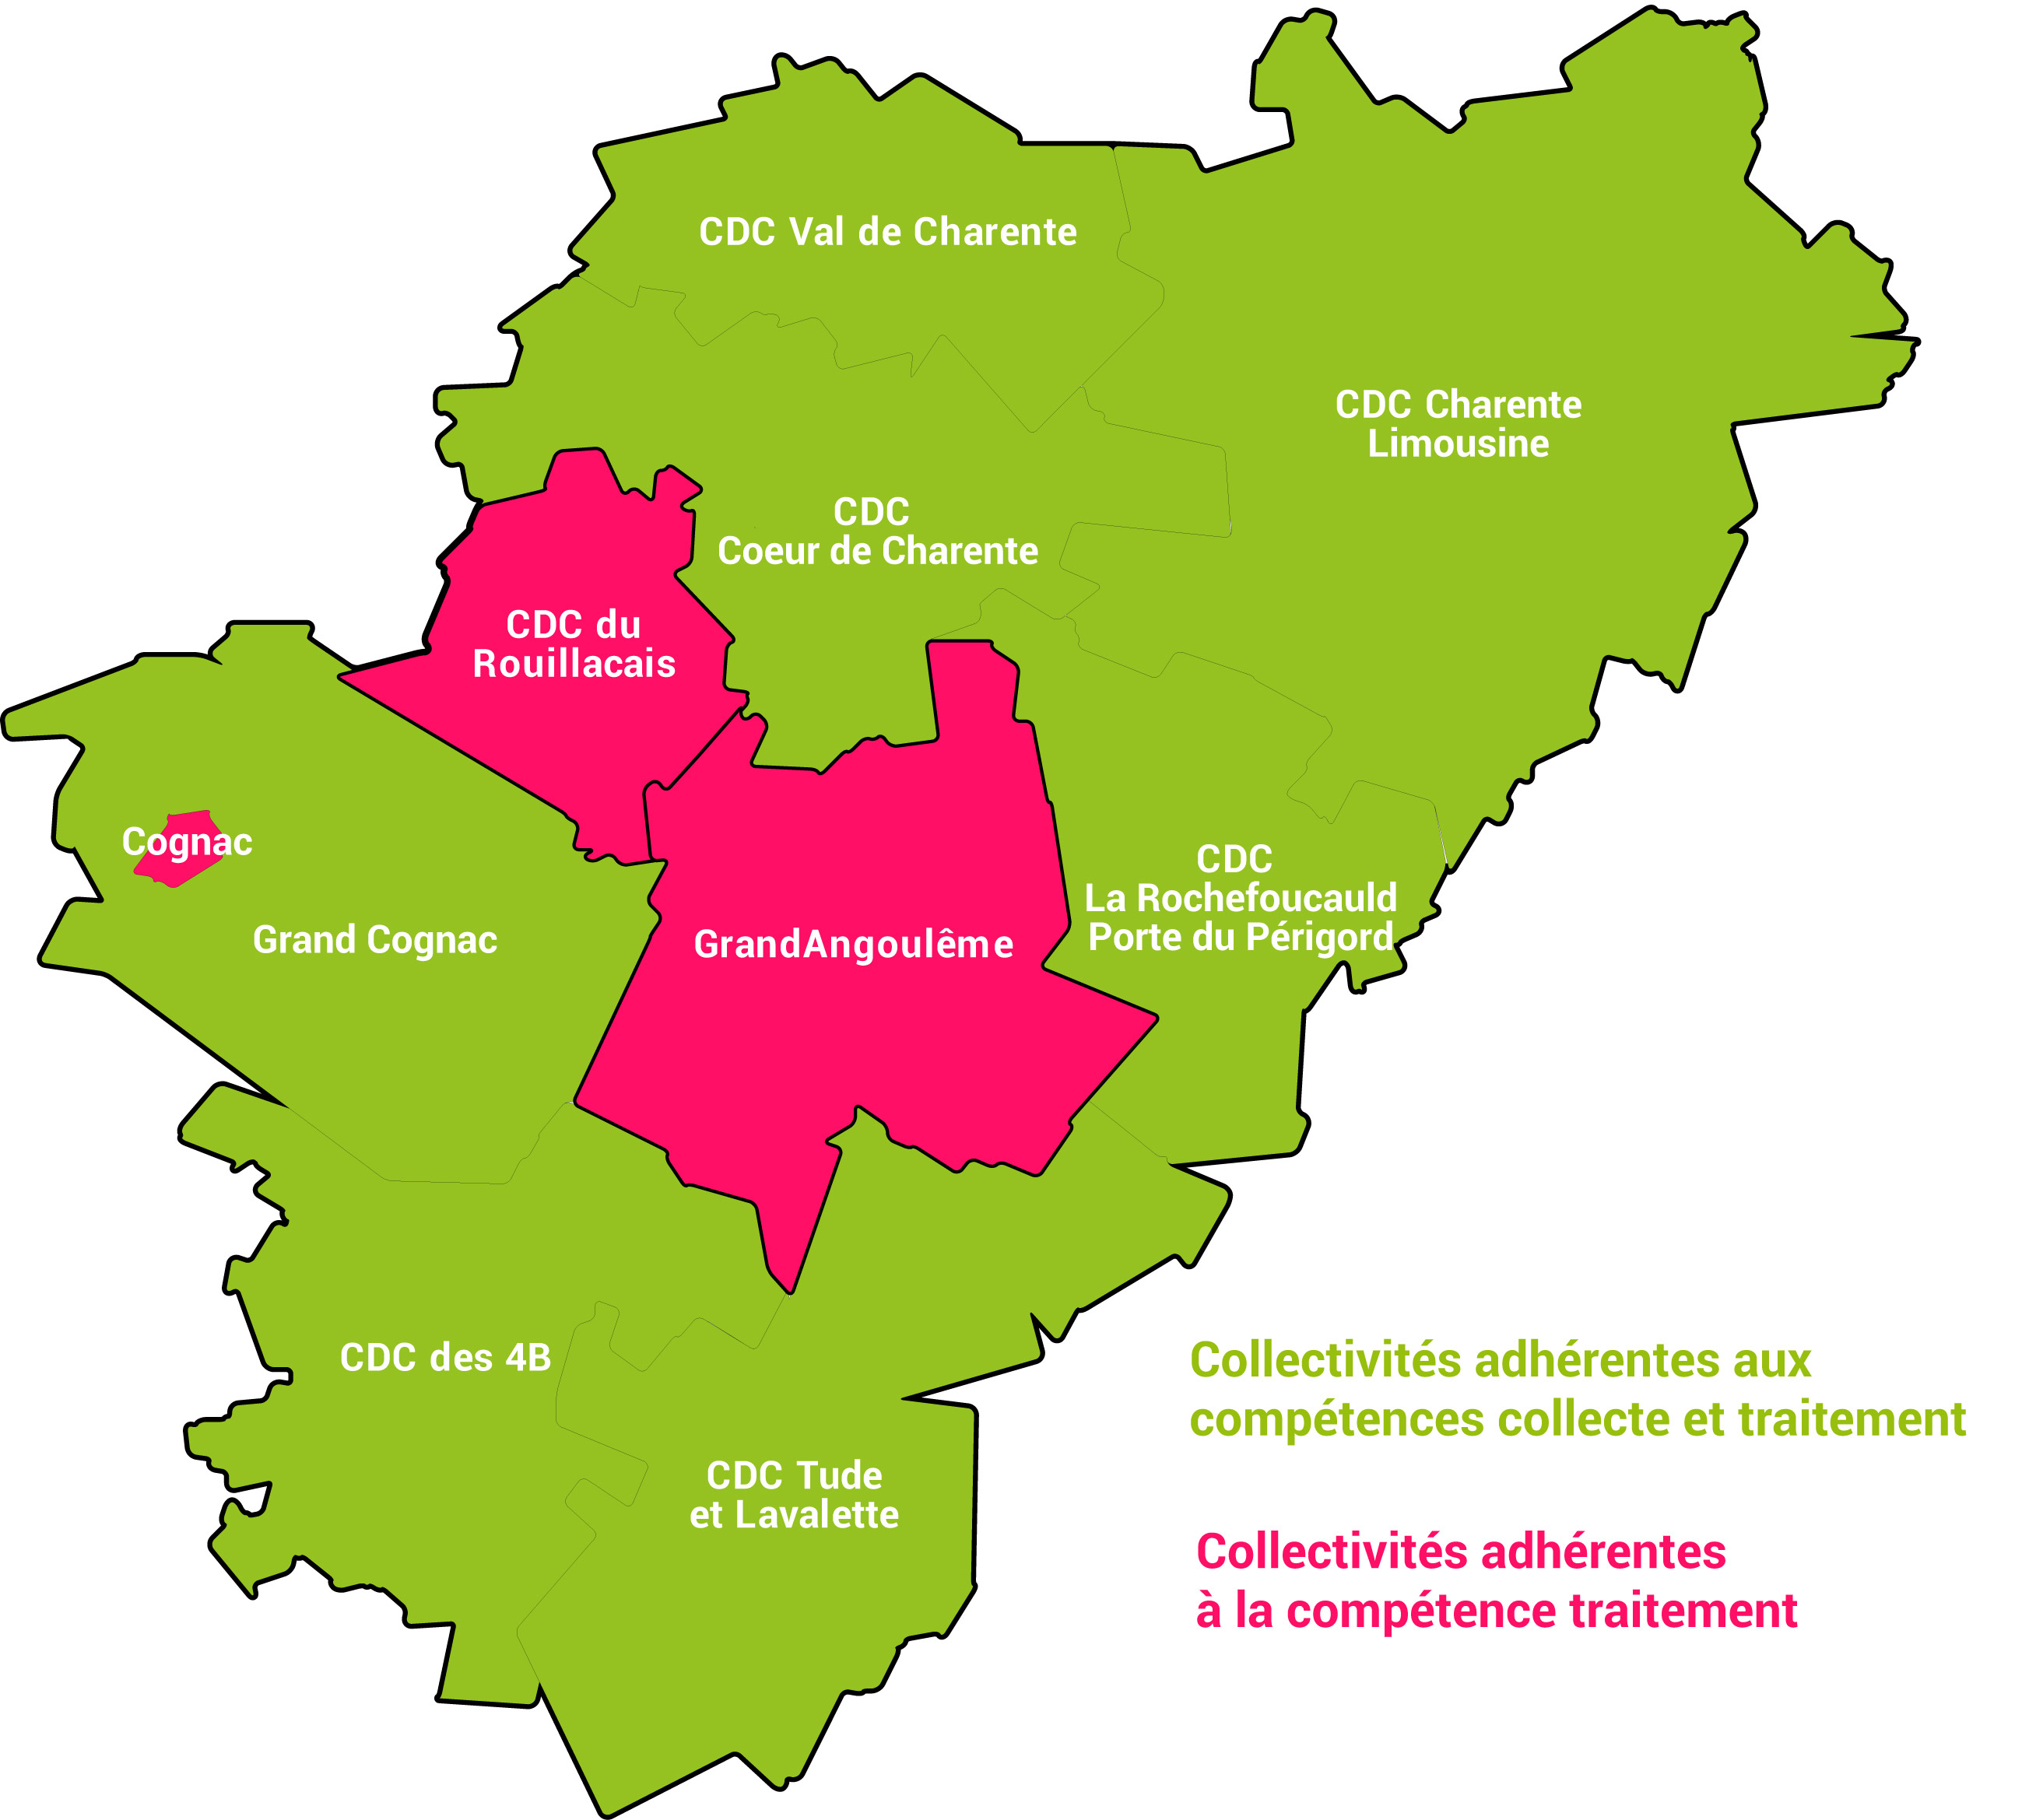 carte des collectivites adherentes